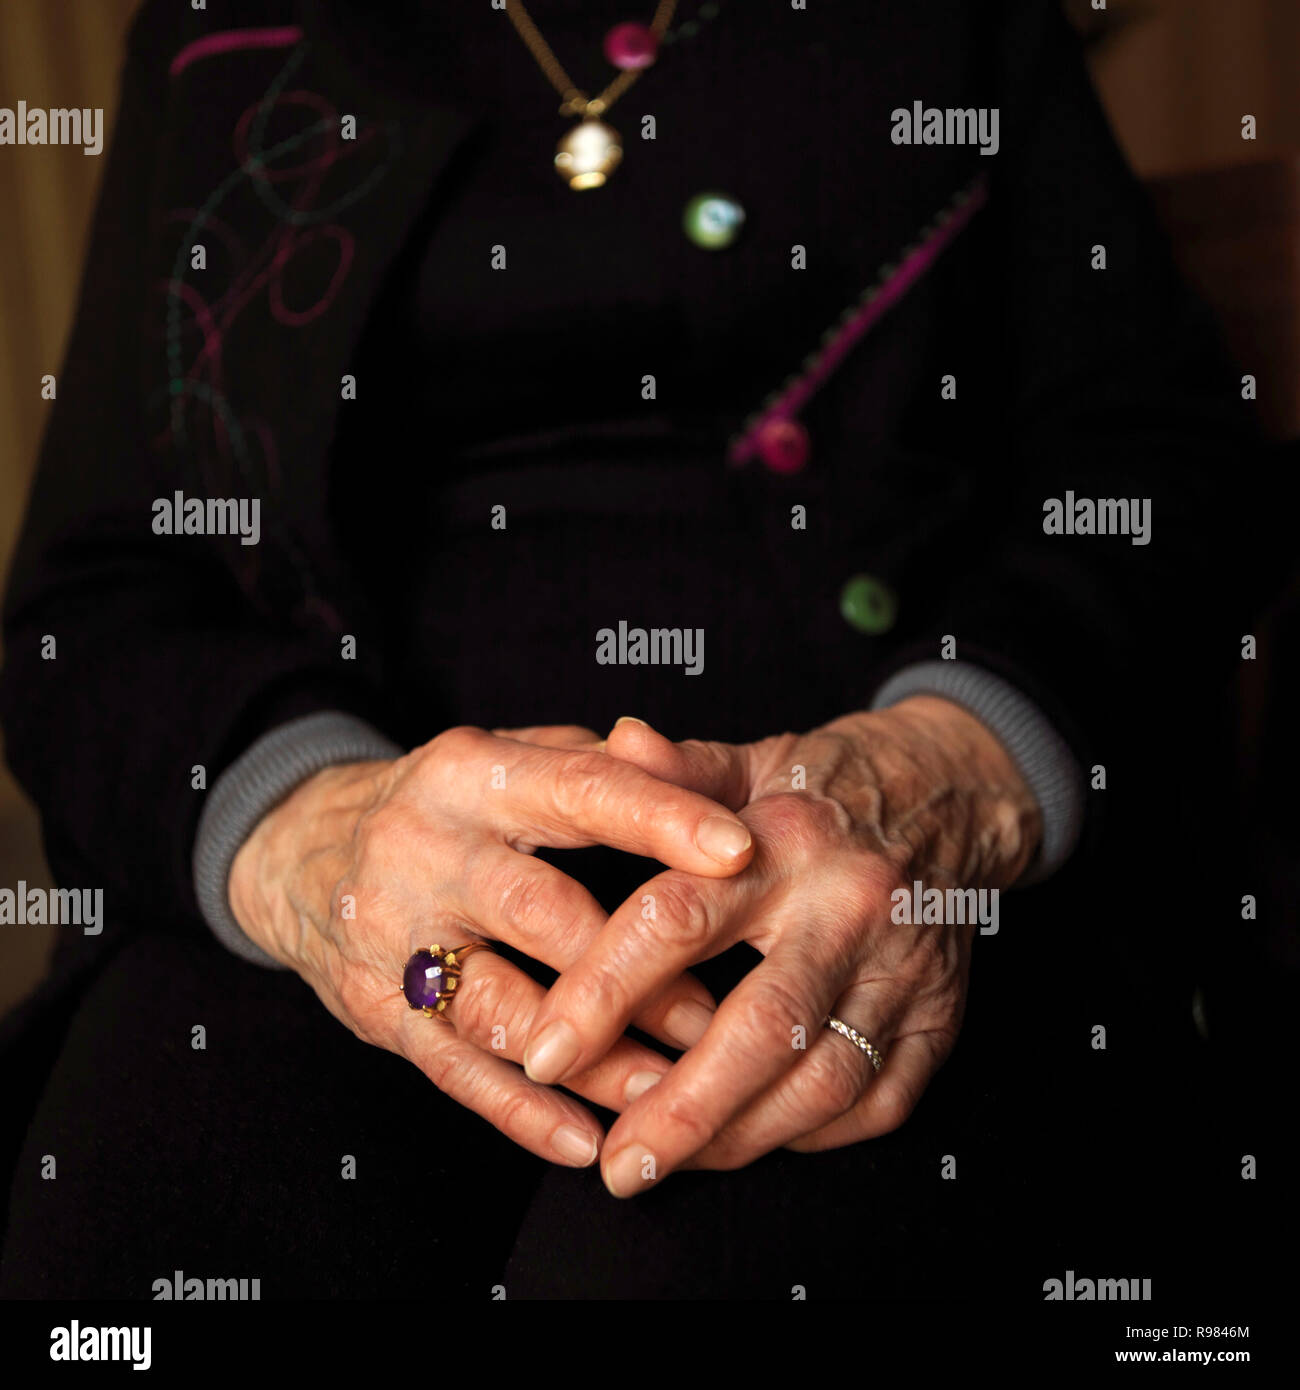 Close-up of hands of a woman - Stock Image